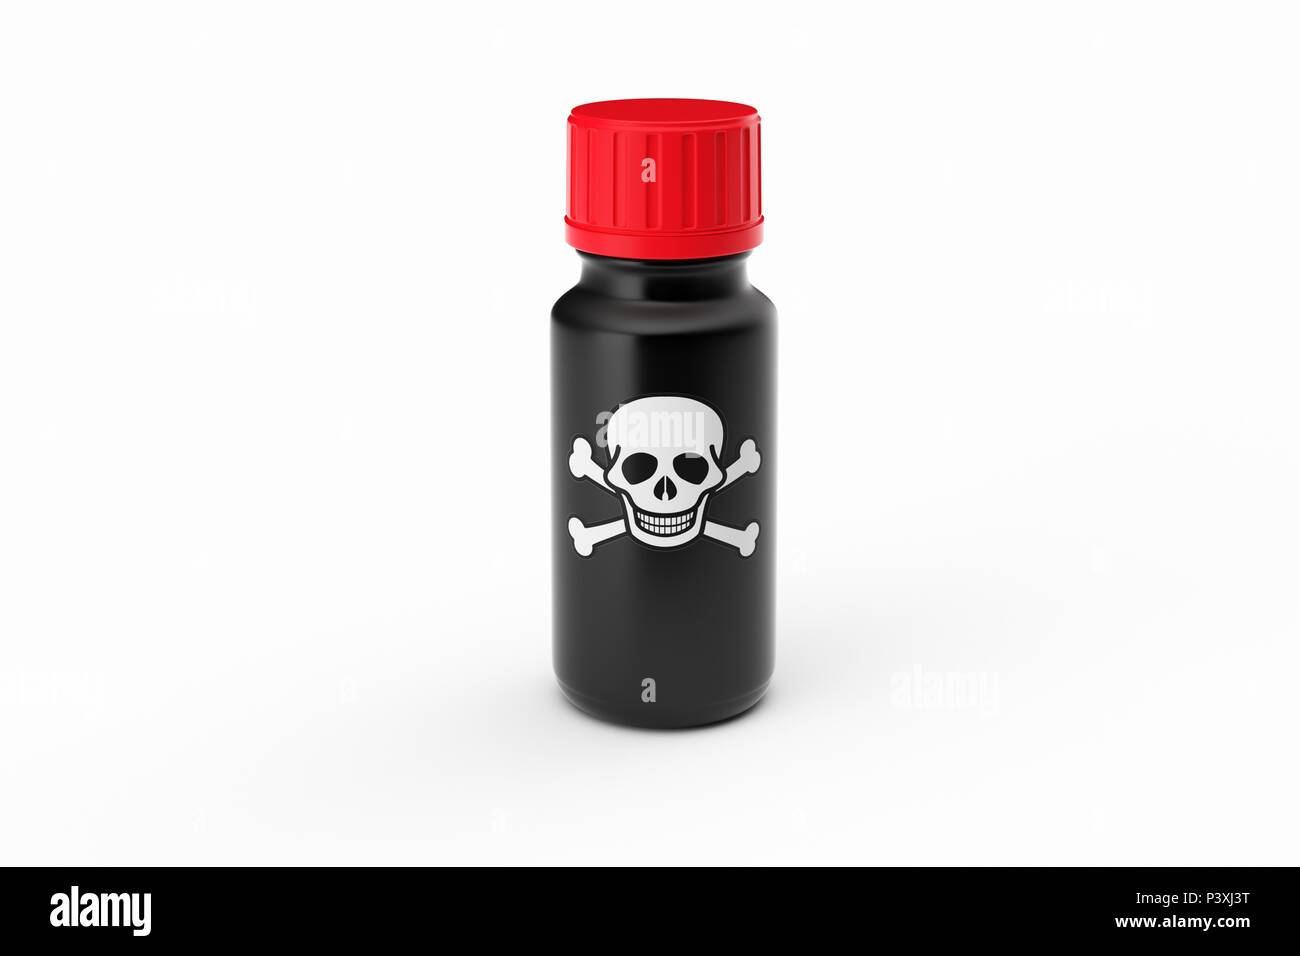 Medicine glass bottle isolated with scull label Illustration - Stock Image